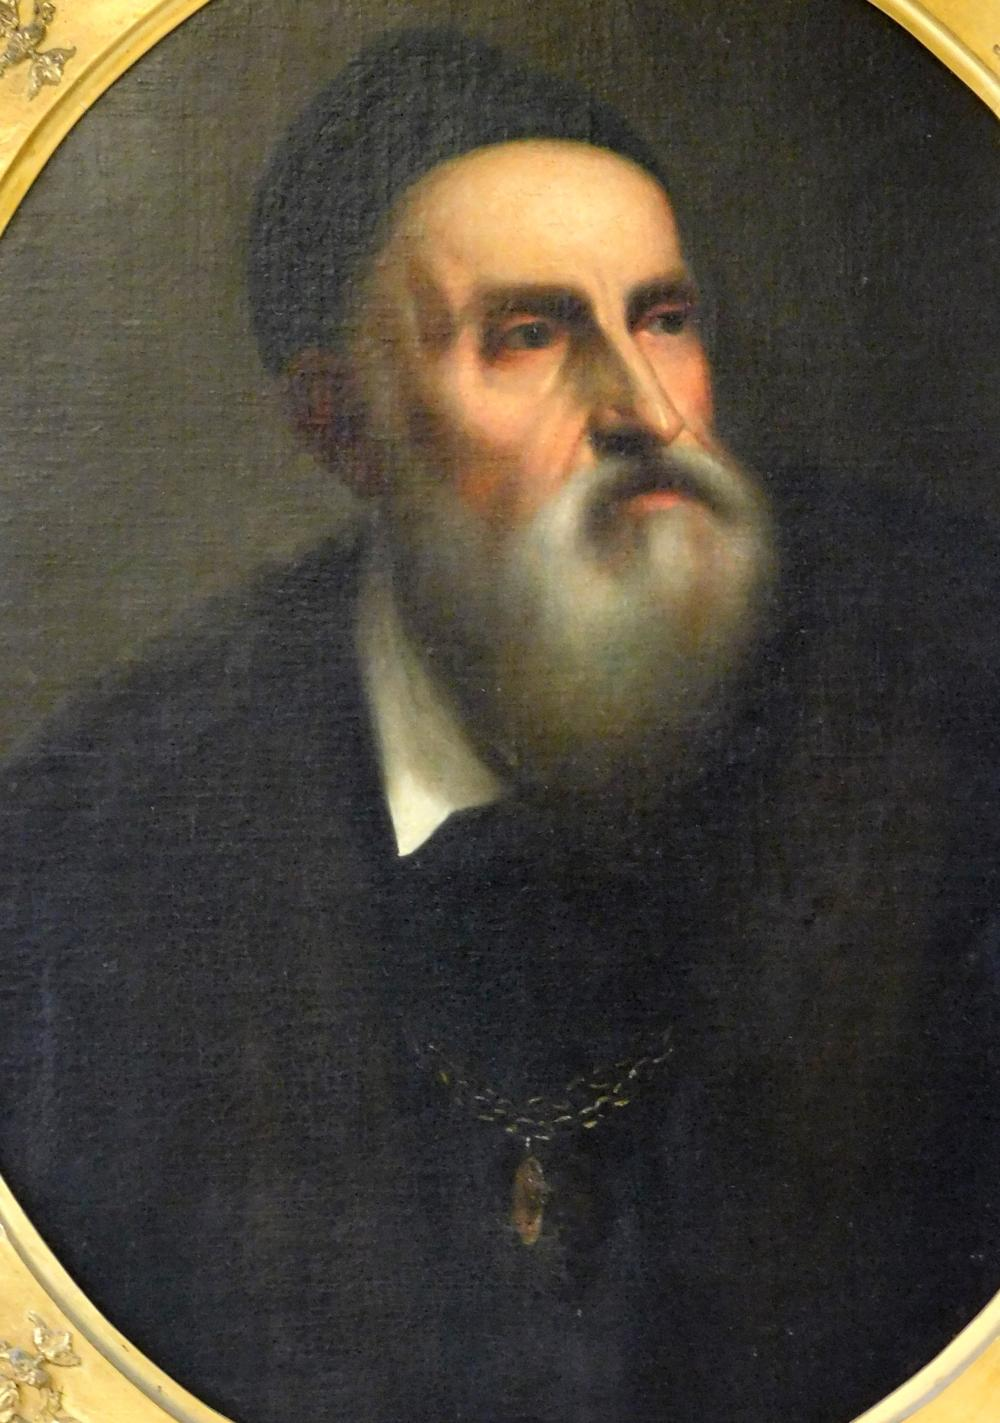 Portrait of gentleman with grey beard, possible depiction of the artist Titian, oil on canvas, portrayed in dark clothing and hat, h...